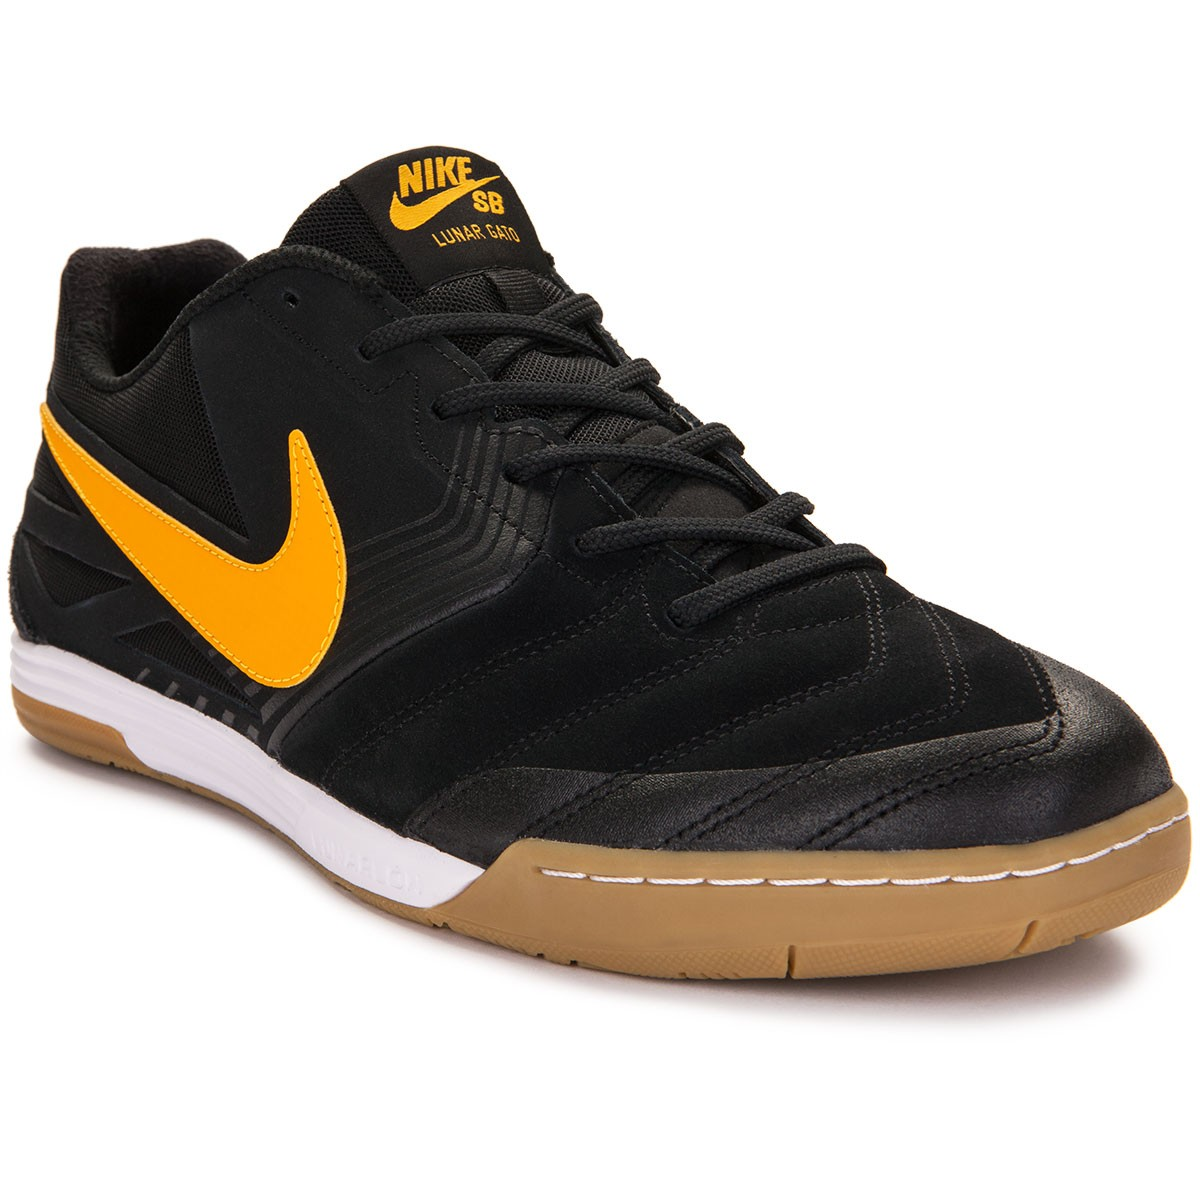 new product c2f0f 7bb93 nike lunar gato safari indoor soccer shoes